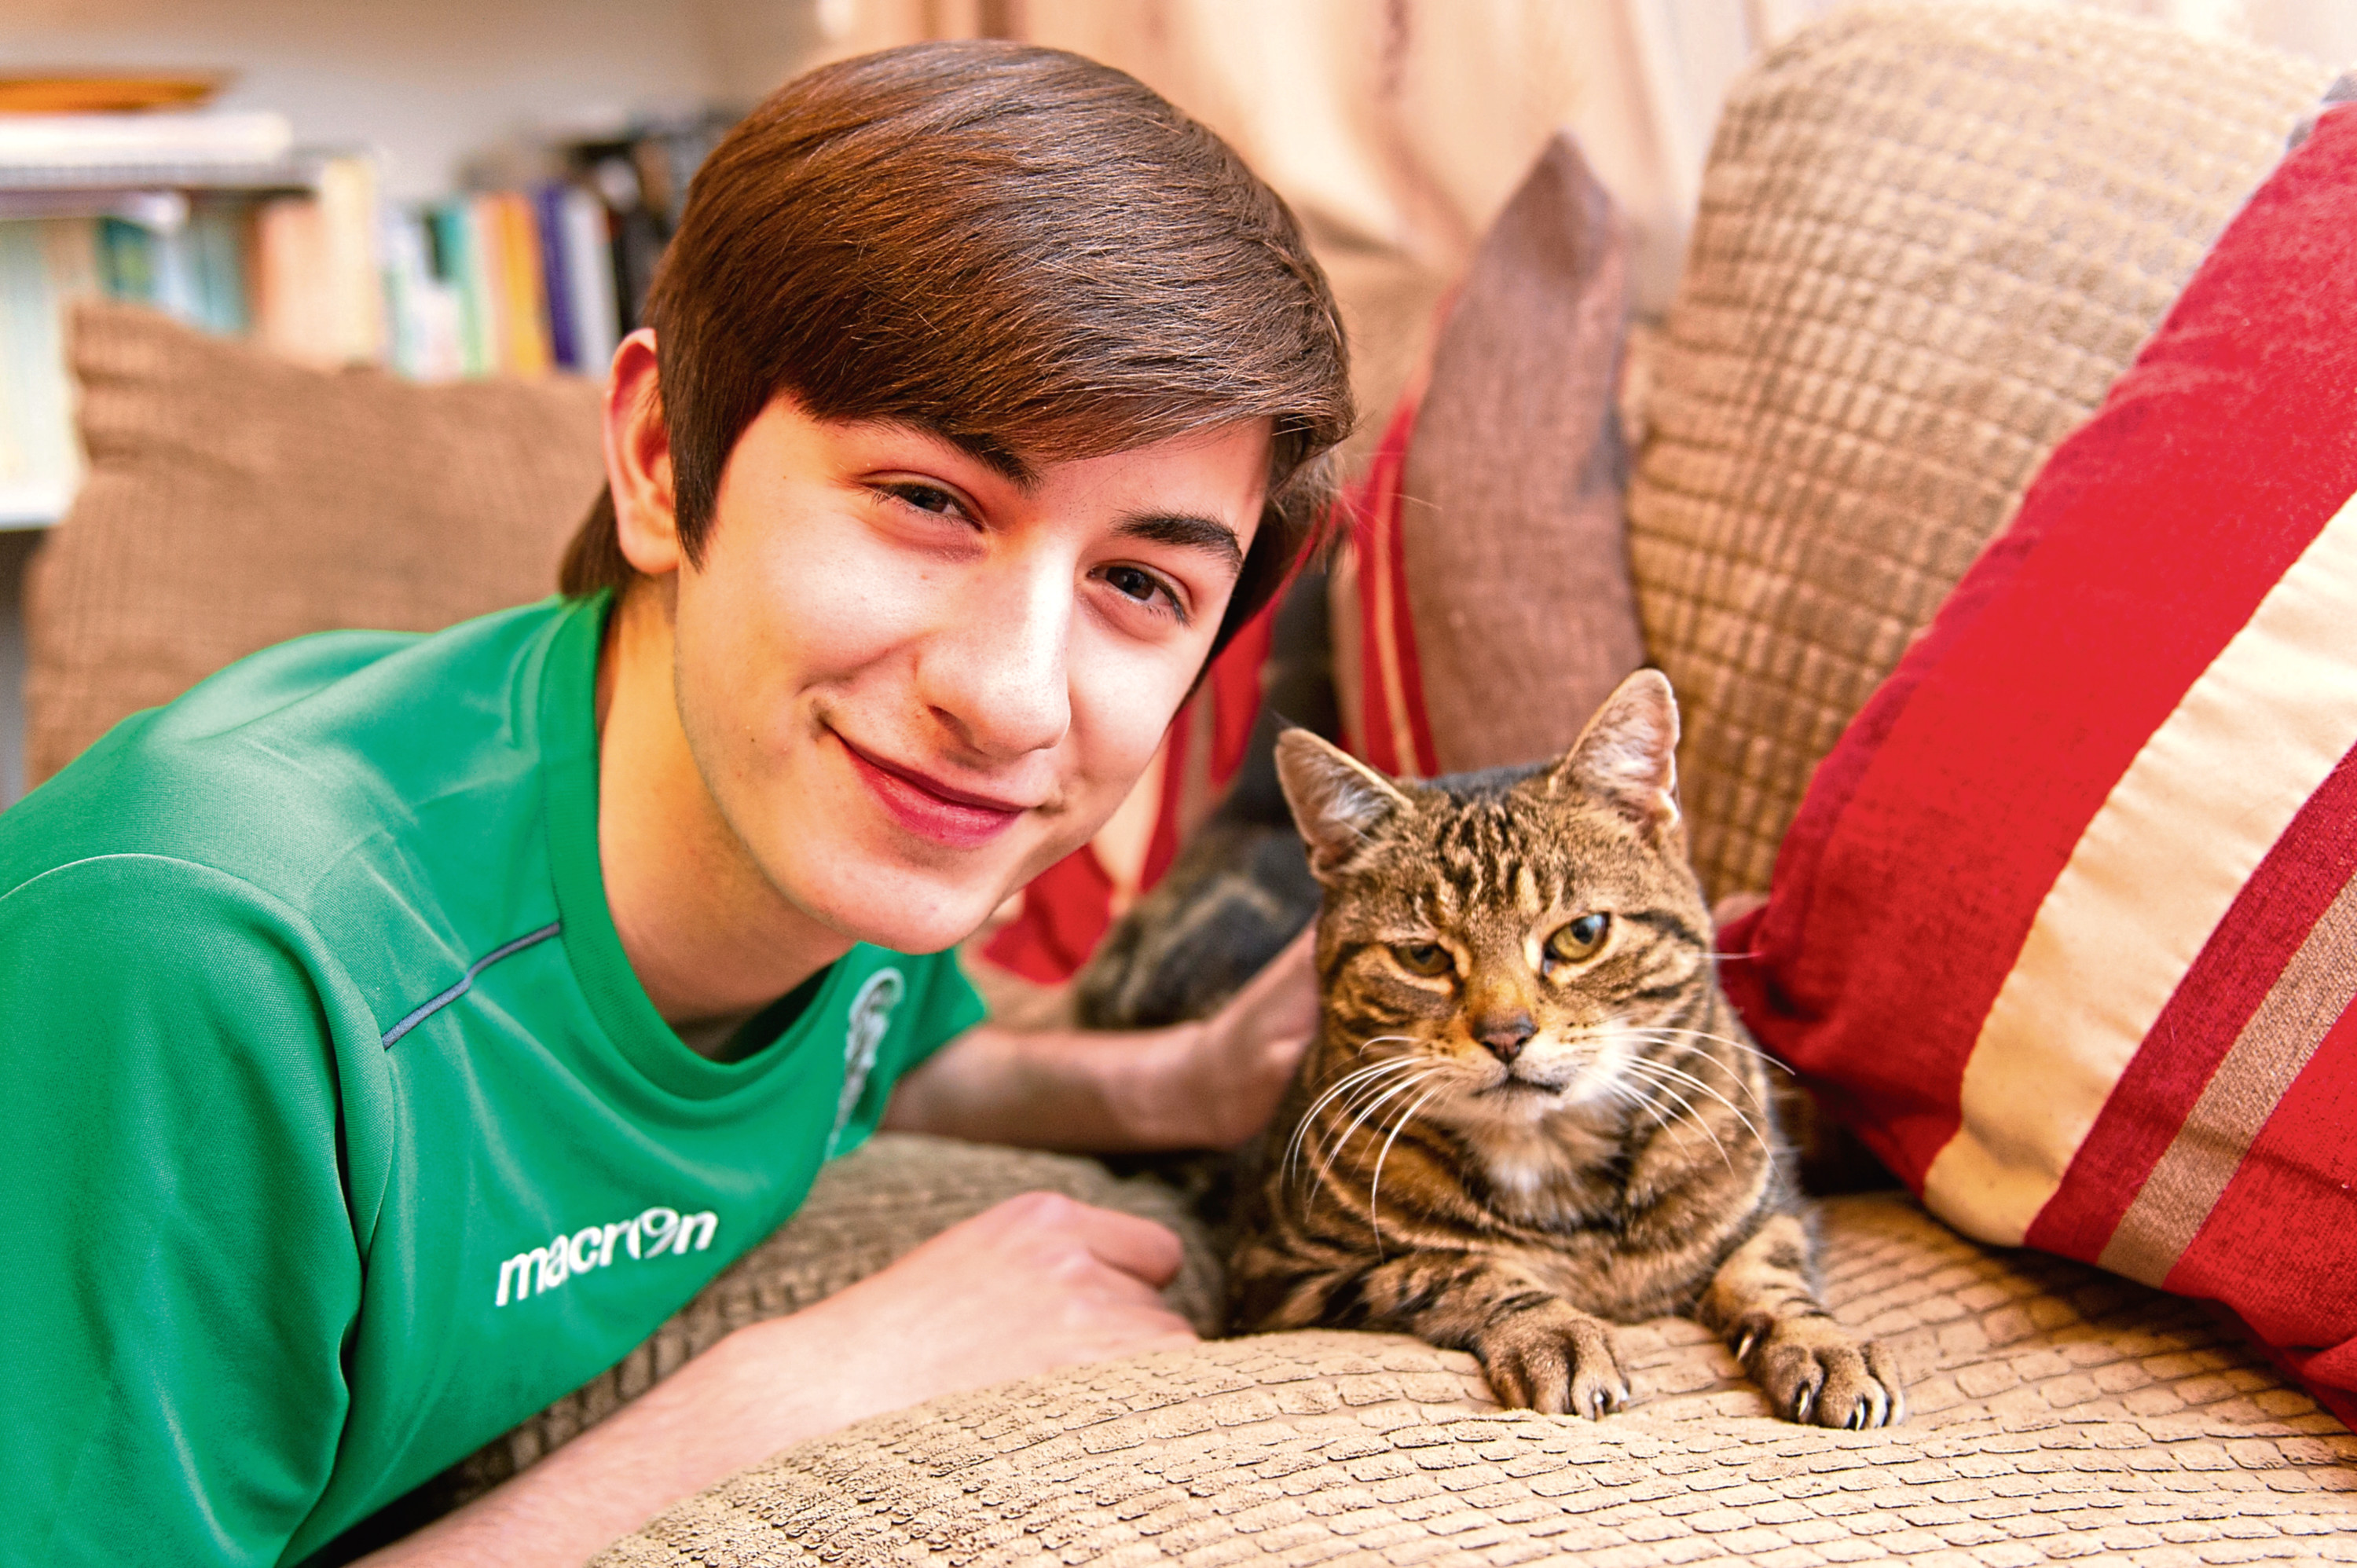 Luke Rowe welcomes back tabby Fudge, who has been returned to his home in Carnoustie